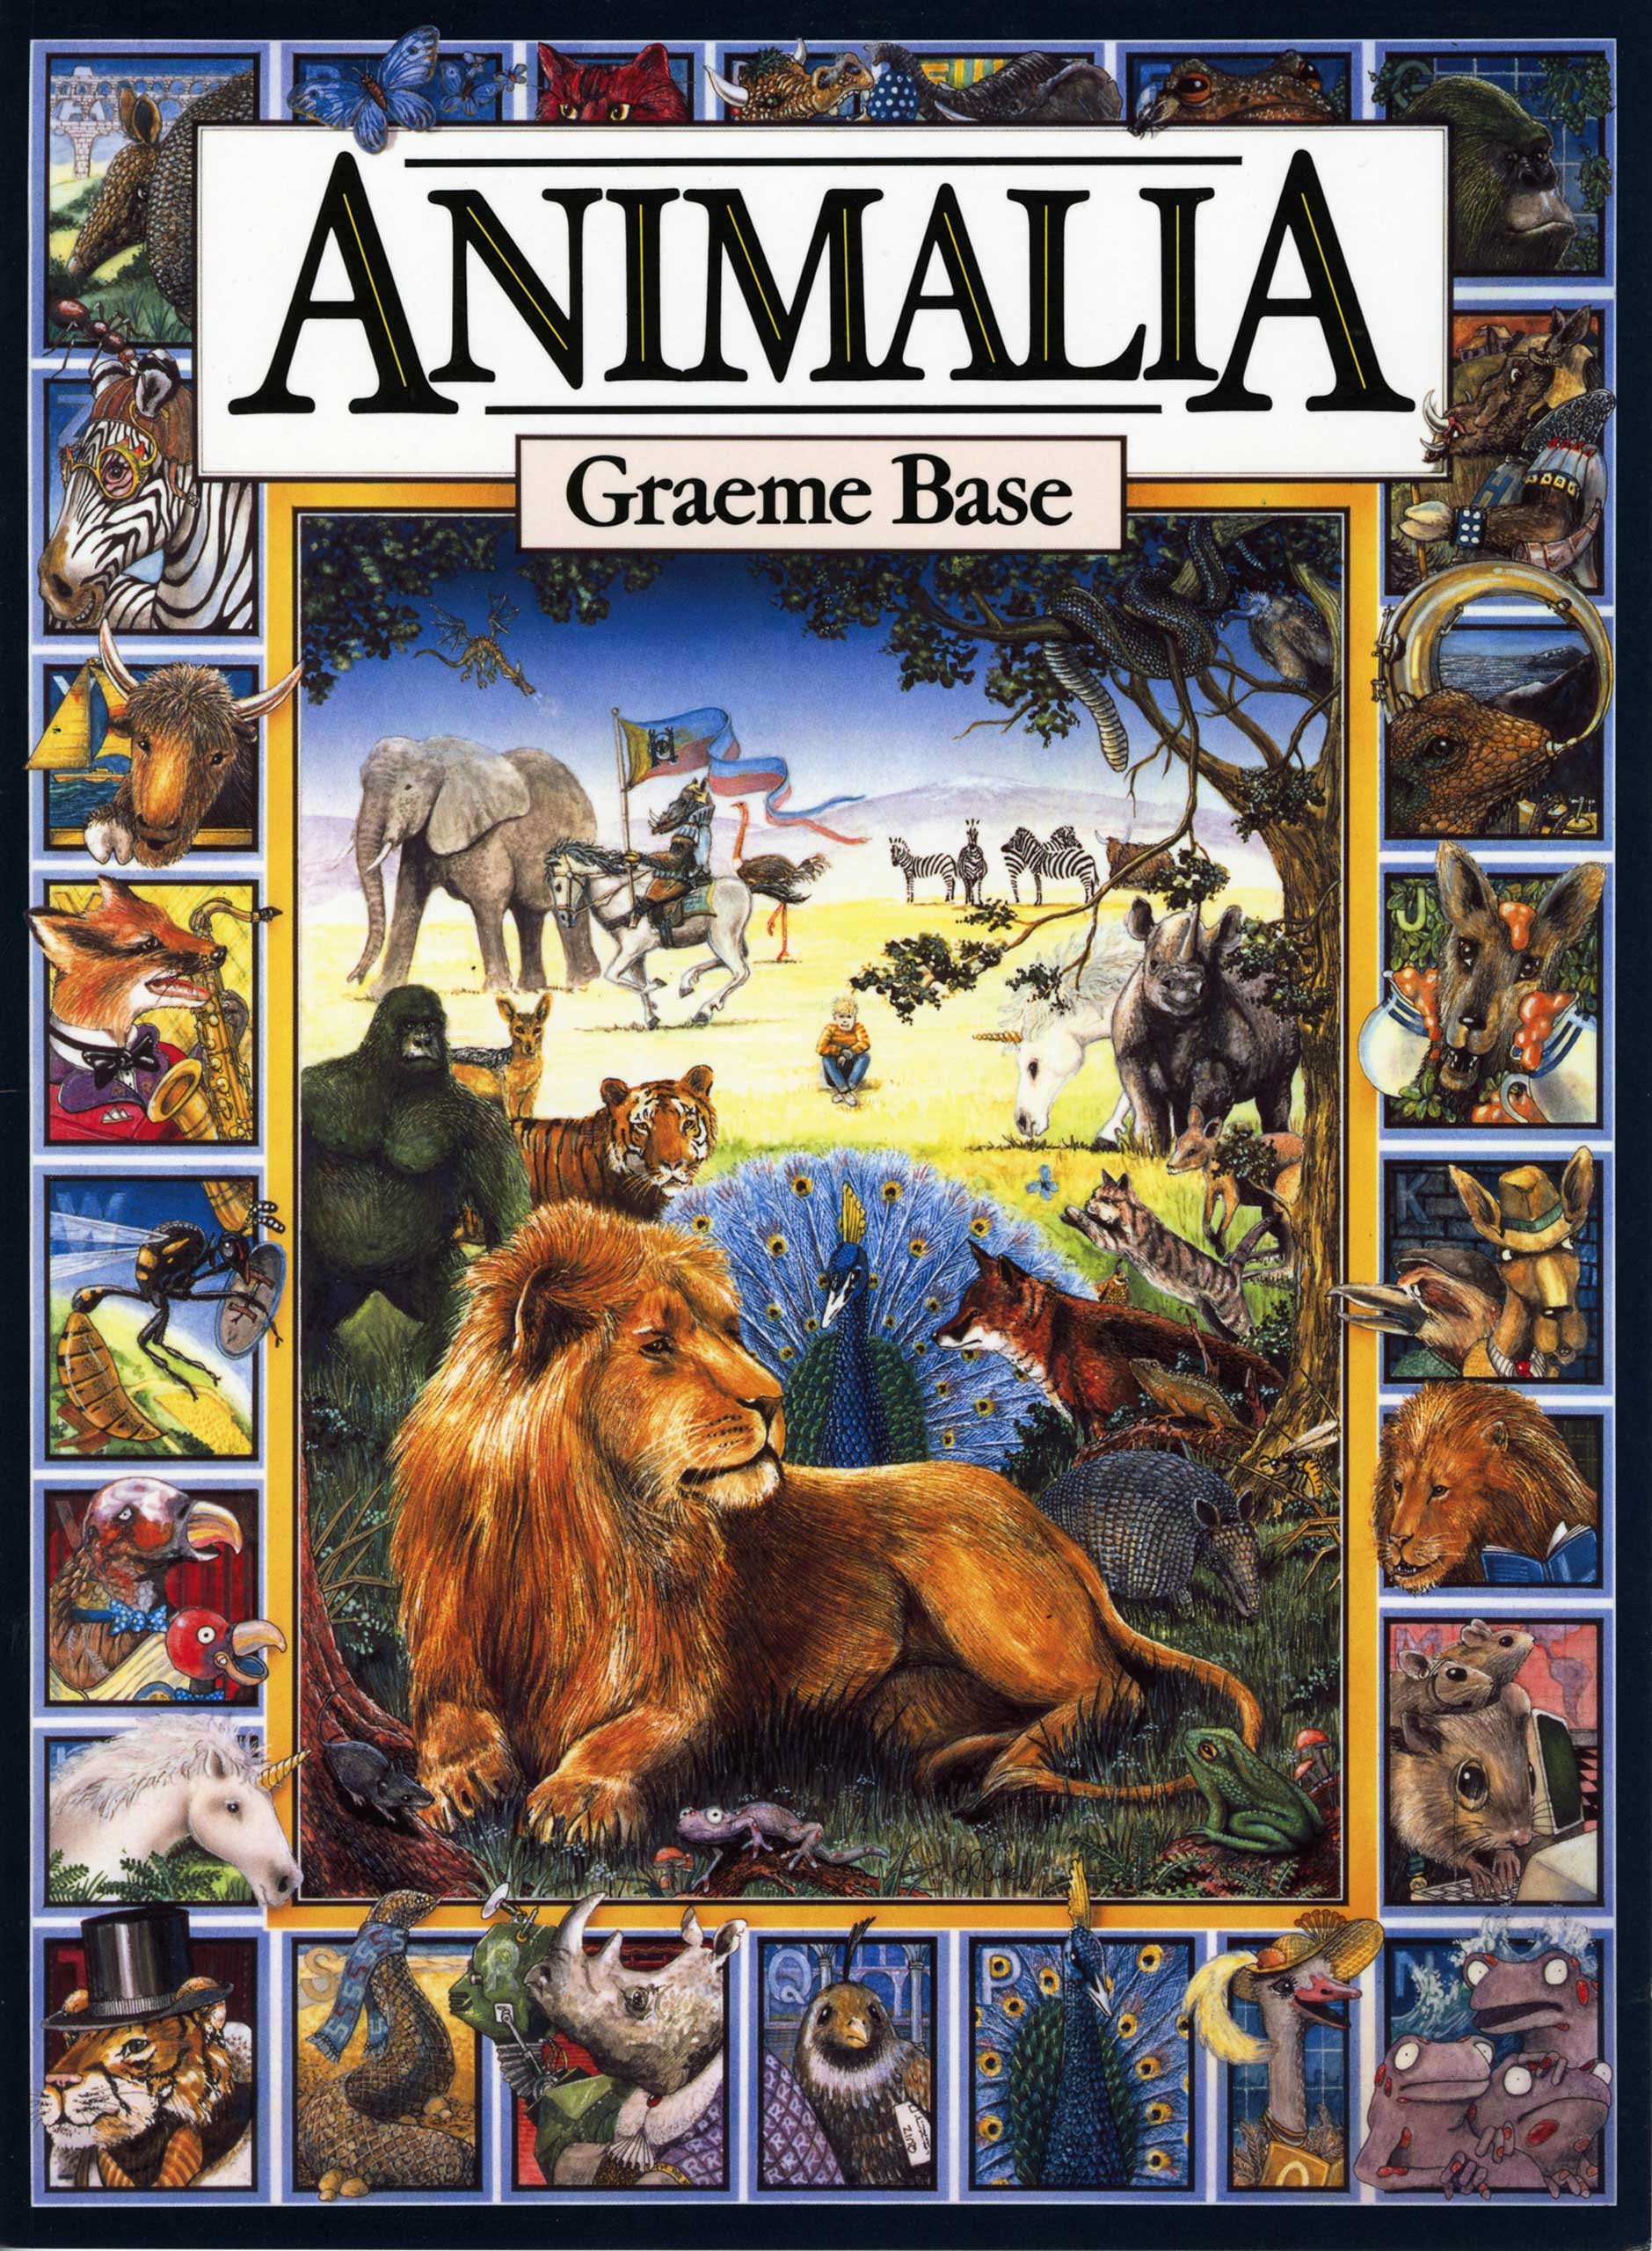 Animalia, by Graeme Base.                                                                                                                            An intricate, animal-themed alphabet book that transcends the limitations of its form.                                                                                                                            Buy now: Animalia